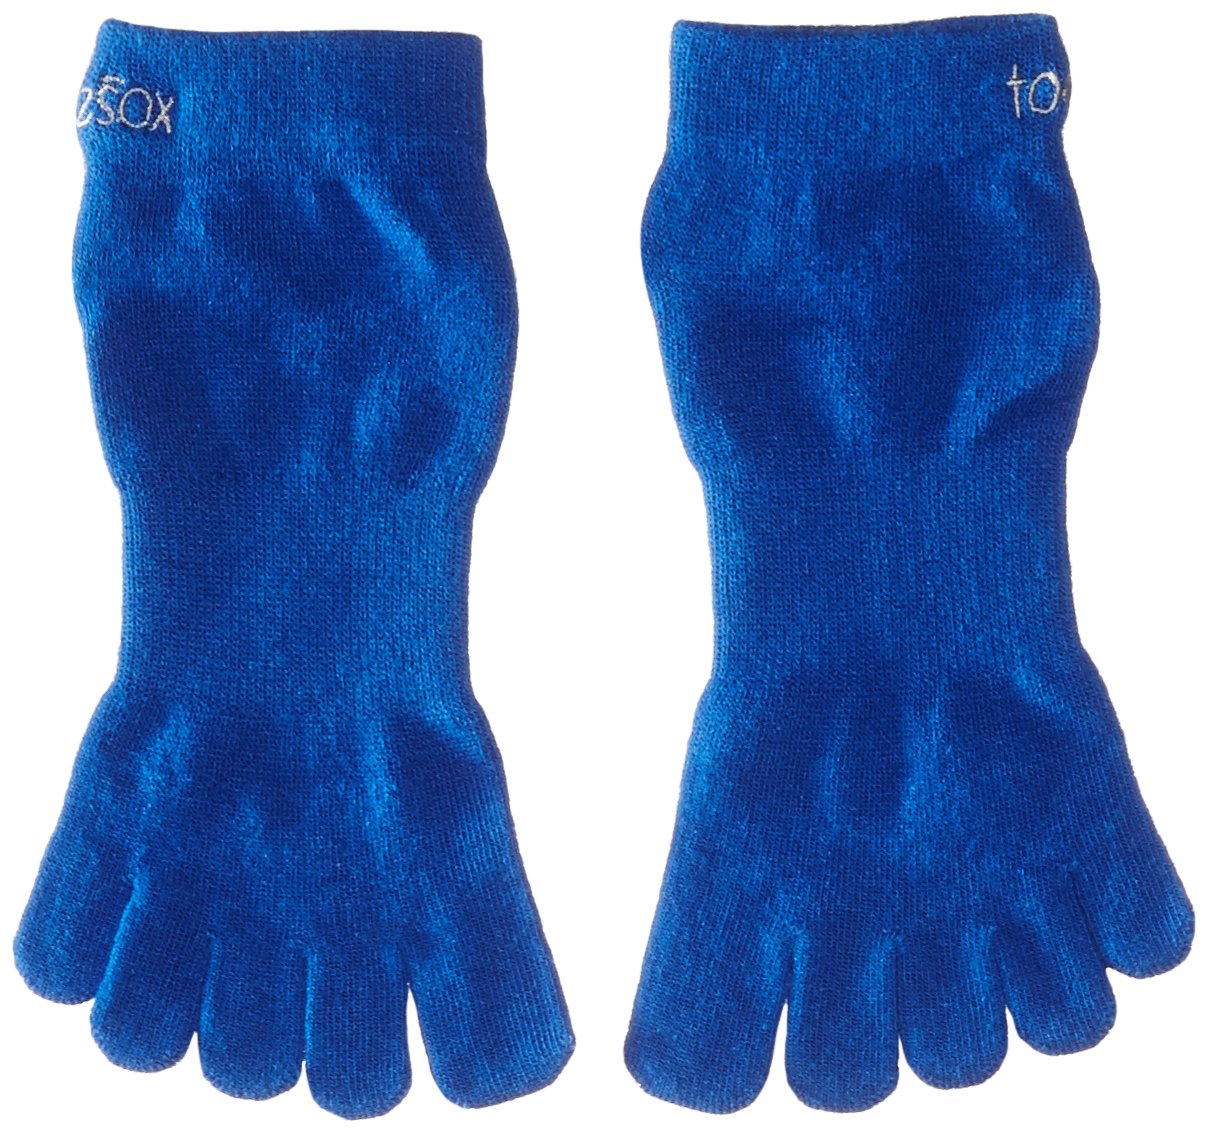 ToeSox Sport Perfdry Ultralite Weight Ankle Socks